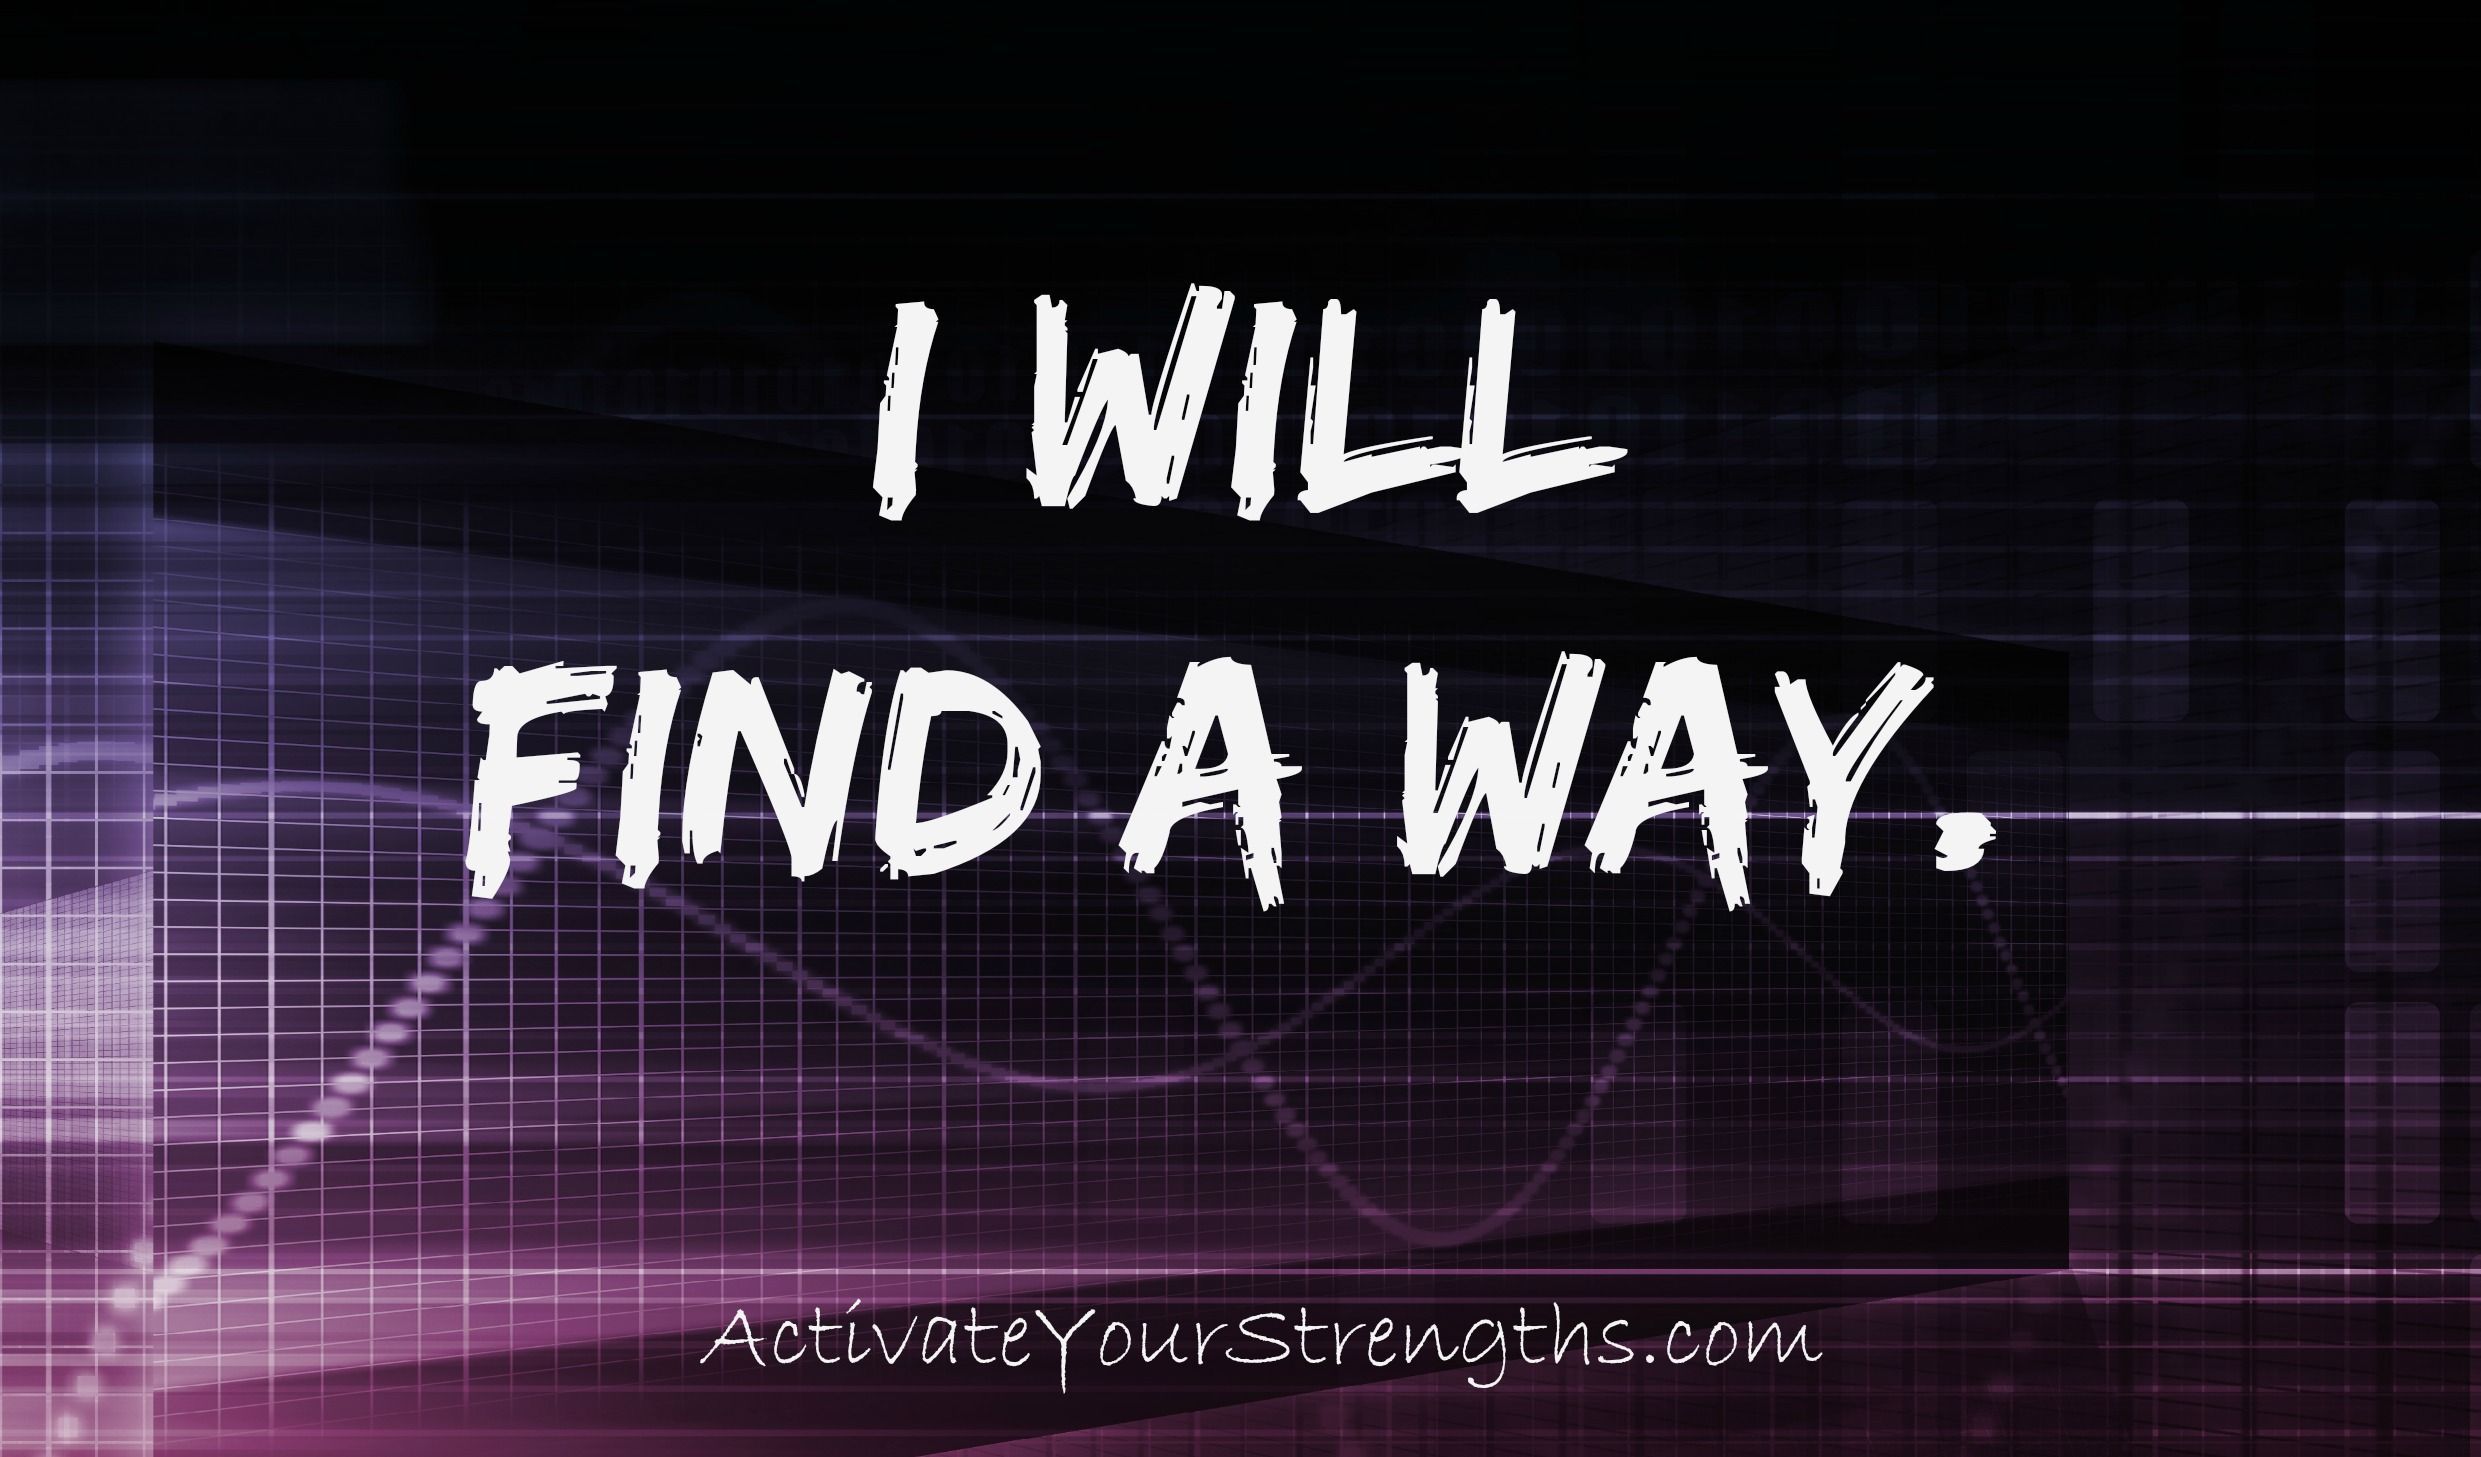 I will find a way.